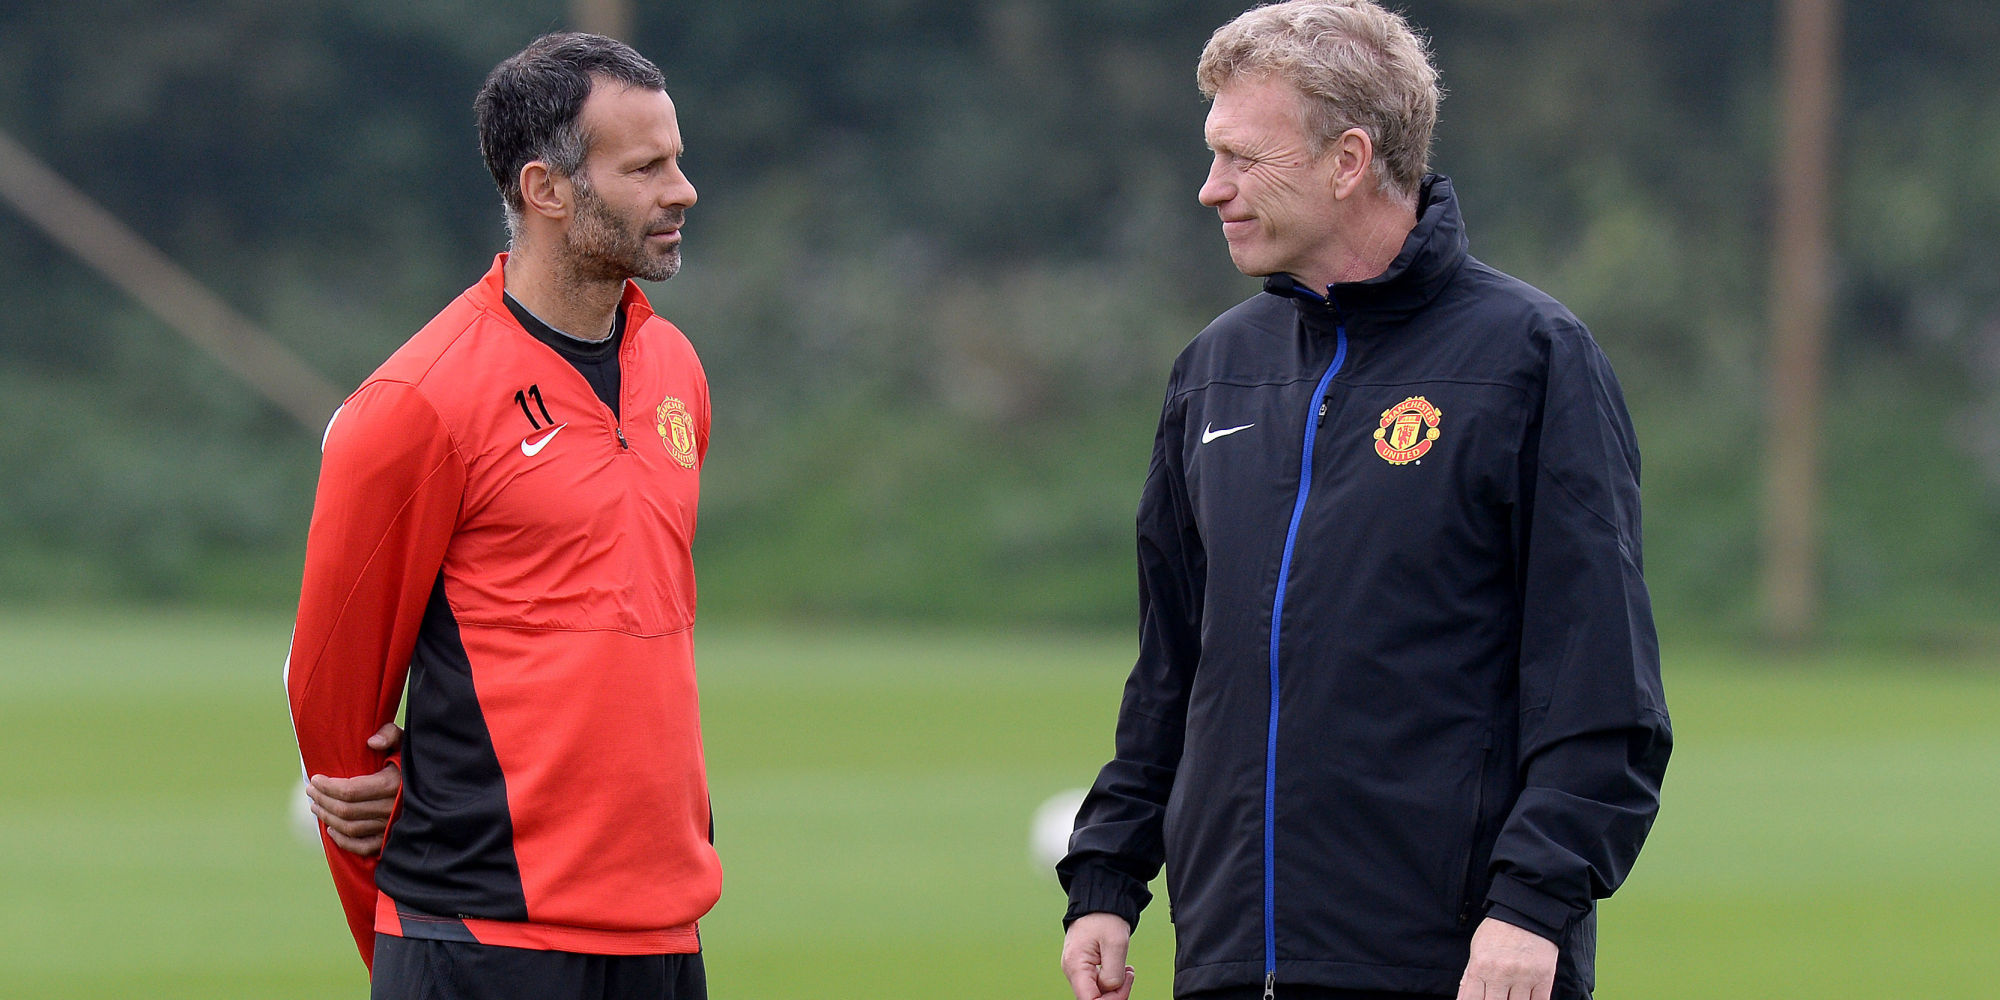 Soccer - UEFA Champions League - Group A - FC Shakhtar Donetsk v Manchester United - Manchester United Training Session - AON Training Complex